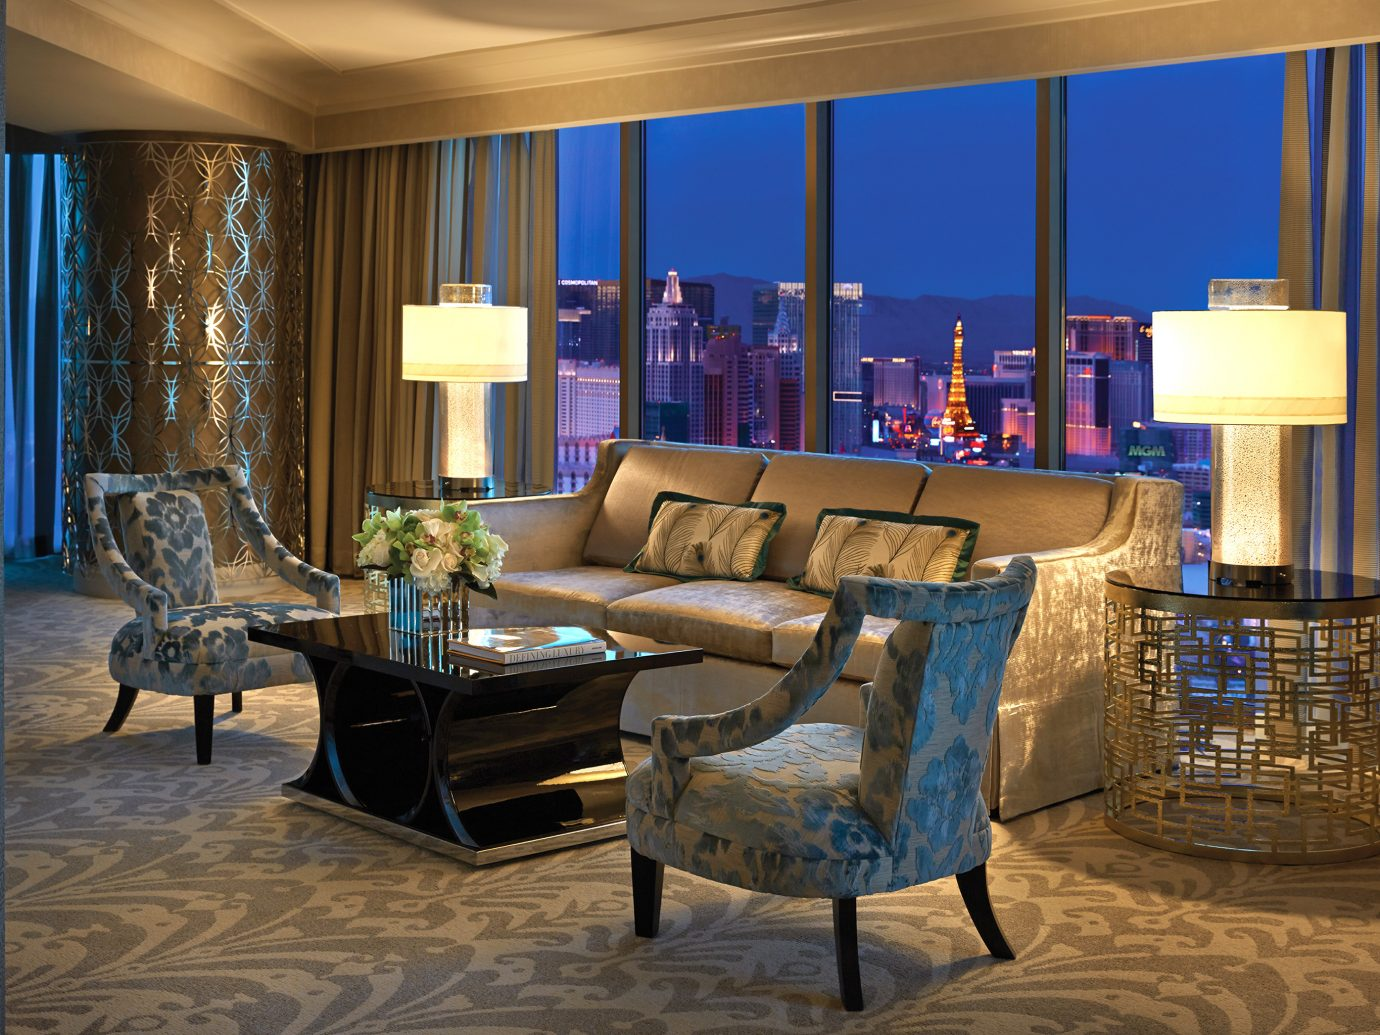 Living room at the Presidential suite at the Four Seasons Las Vegas